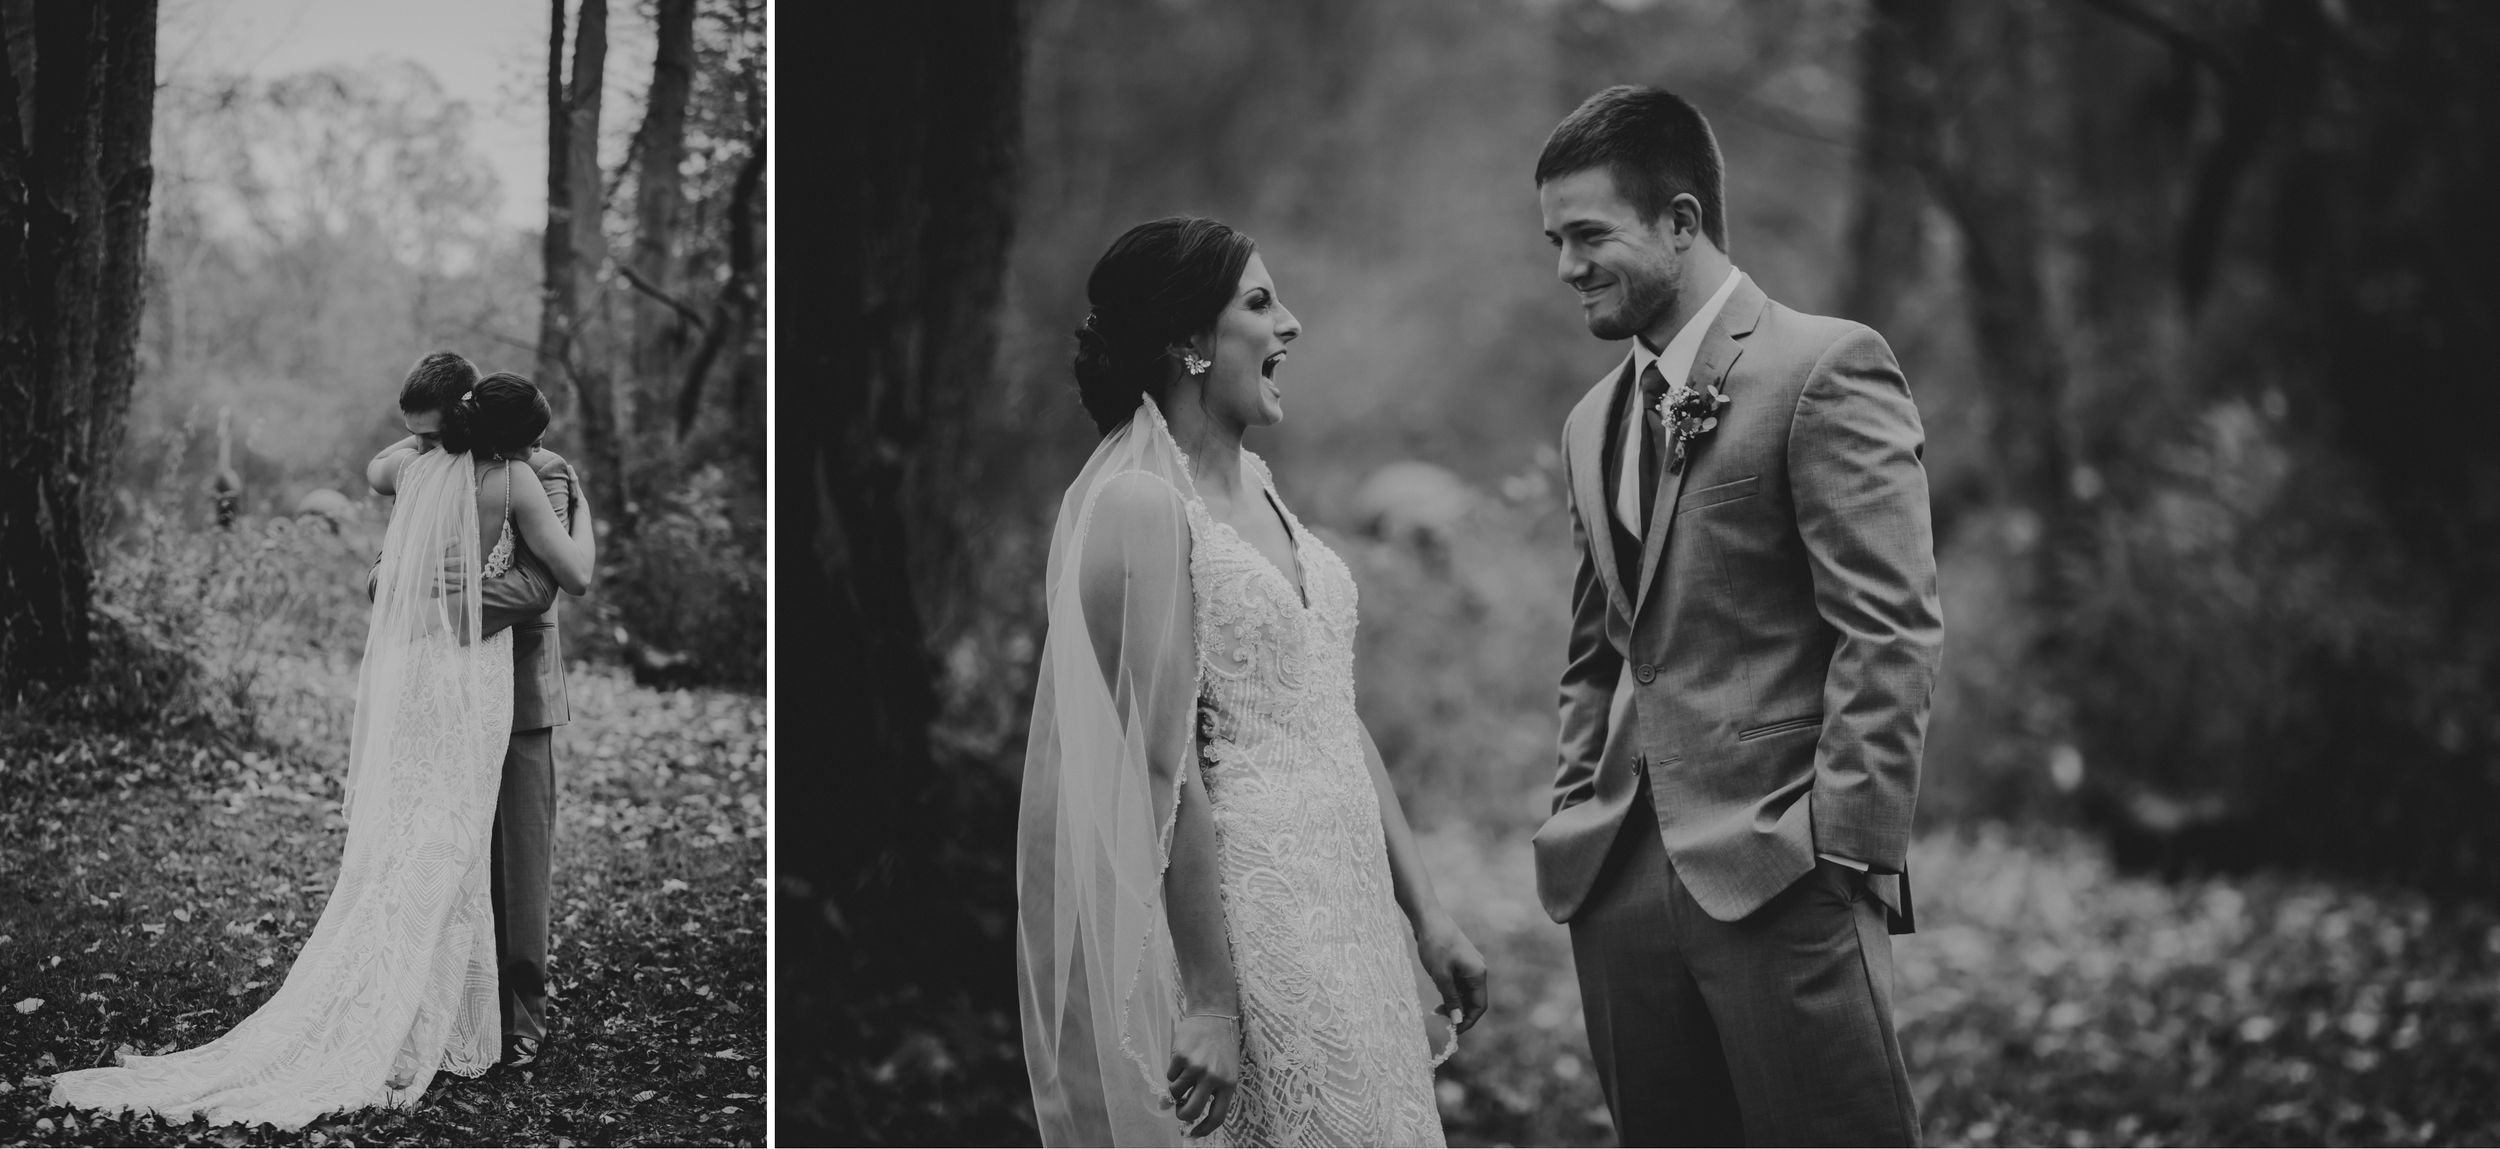 Black and white photos of the bride and groom embracing then laughing.